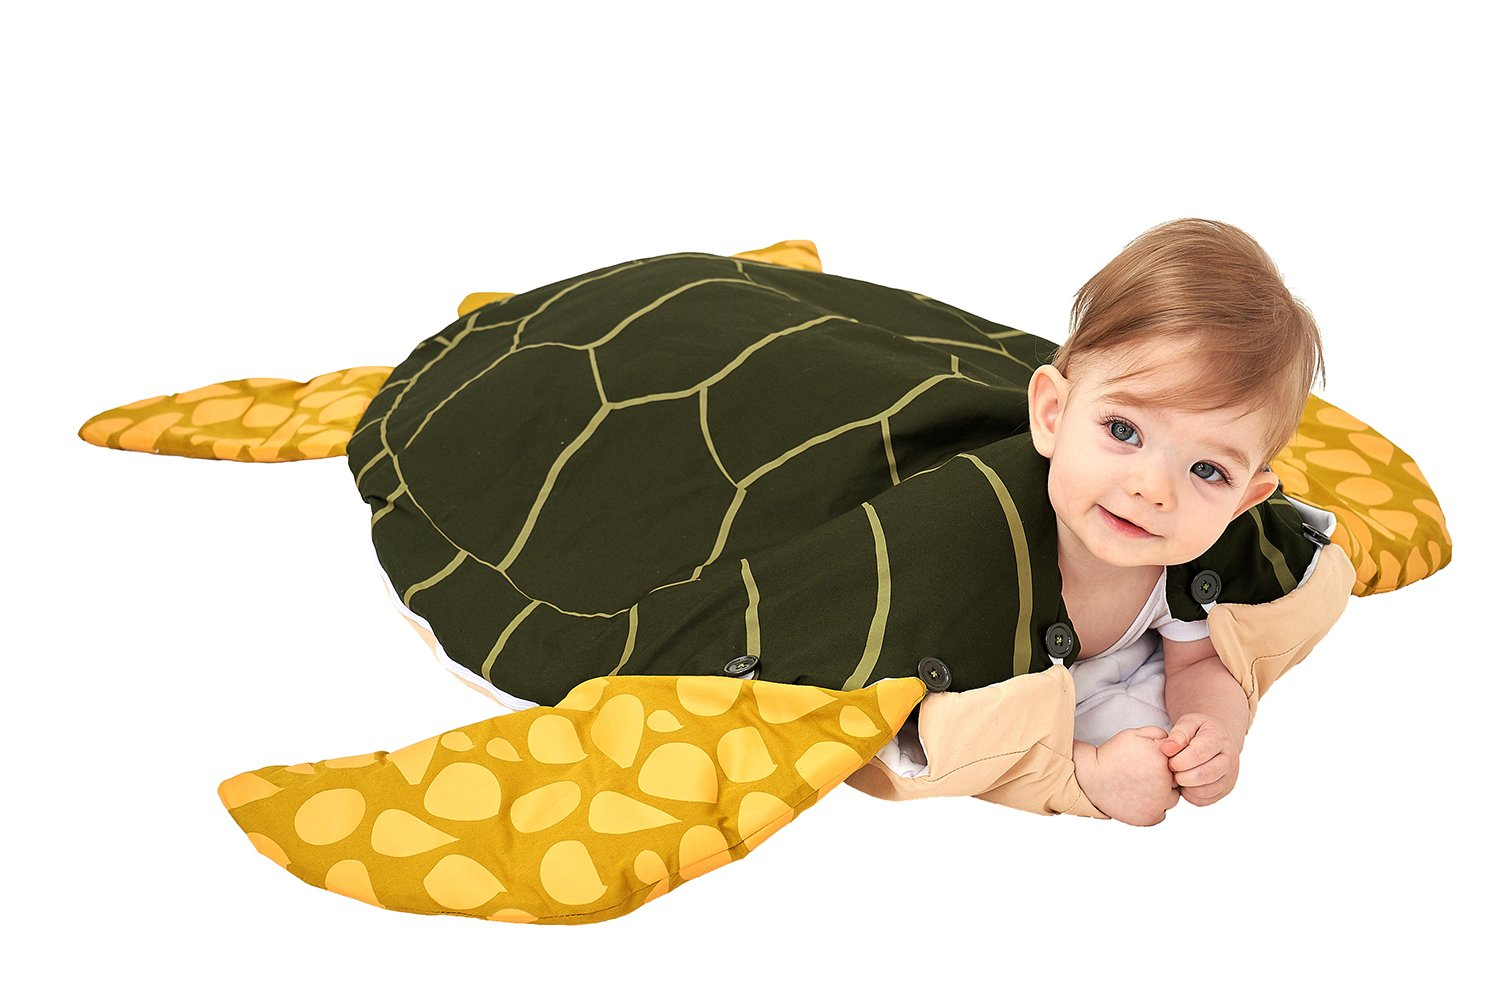 Animal Style Turtle Baby Sleeping Bag and Blanket 100% Cotton Removable Sleeve